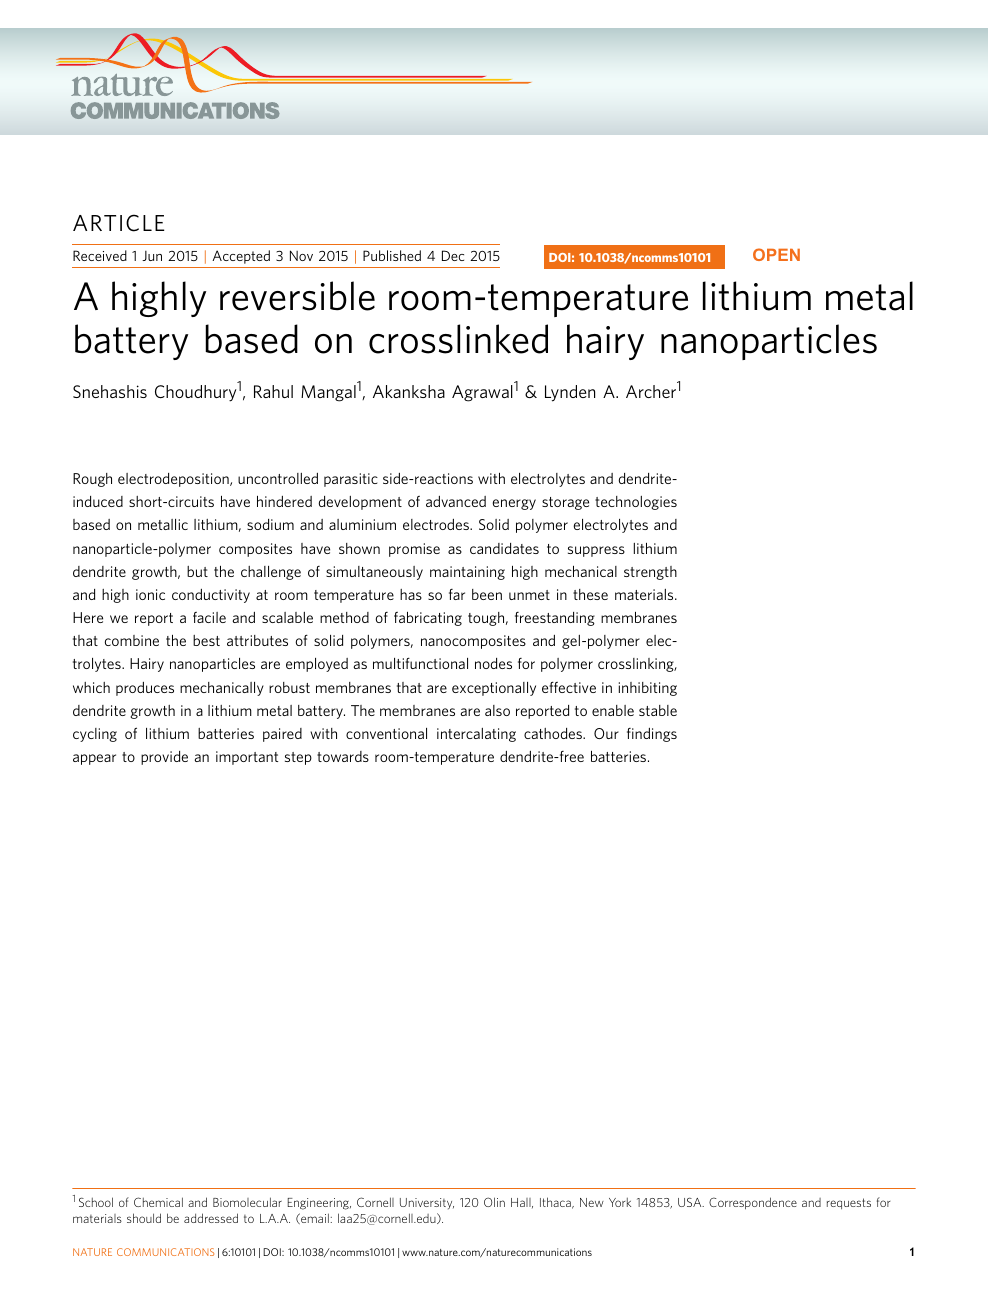 A highly reversible room-temperature lithium metal battery